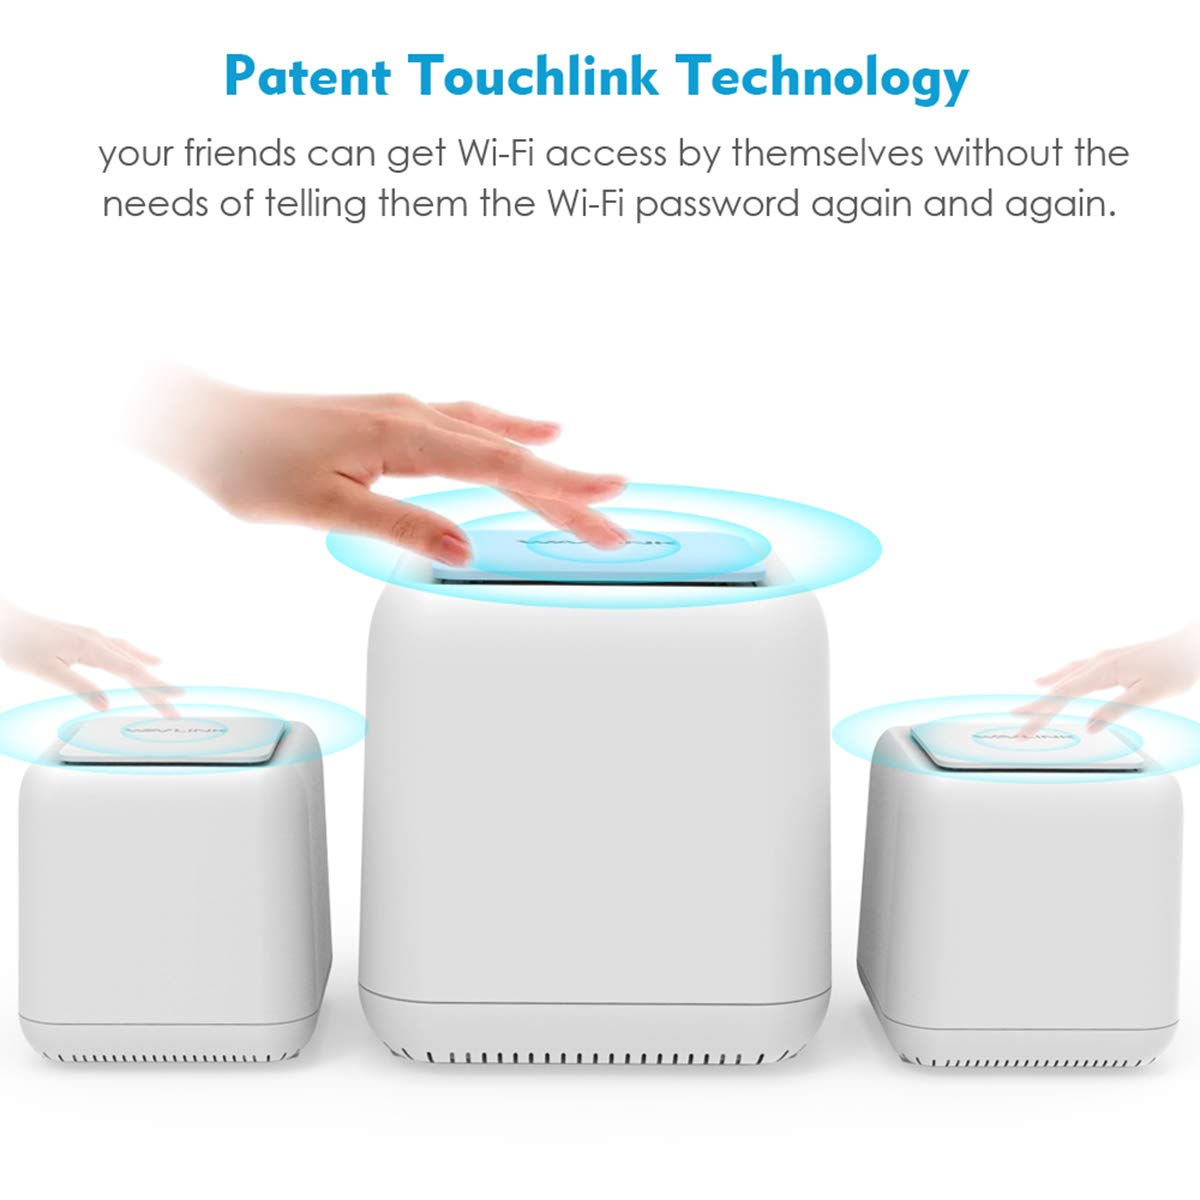 AC1200 Dual Band 2.4Ghz 1 Mesh Router + 2 Satellite Gigabit Port 5Ghz Smart Wireless WiFi System with Touchlink WAVLINK Halo 3 Whole Home Mesh WiFi System 6000.sq.ft Coverage Pack of 3